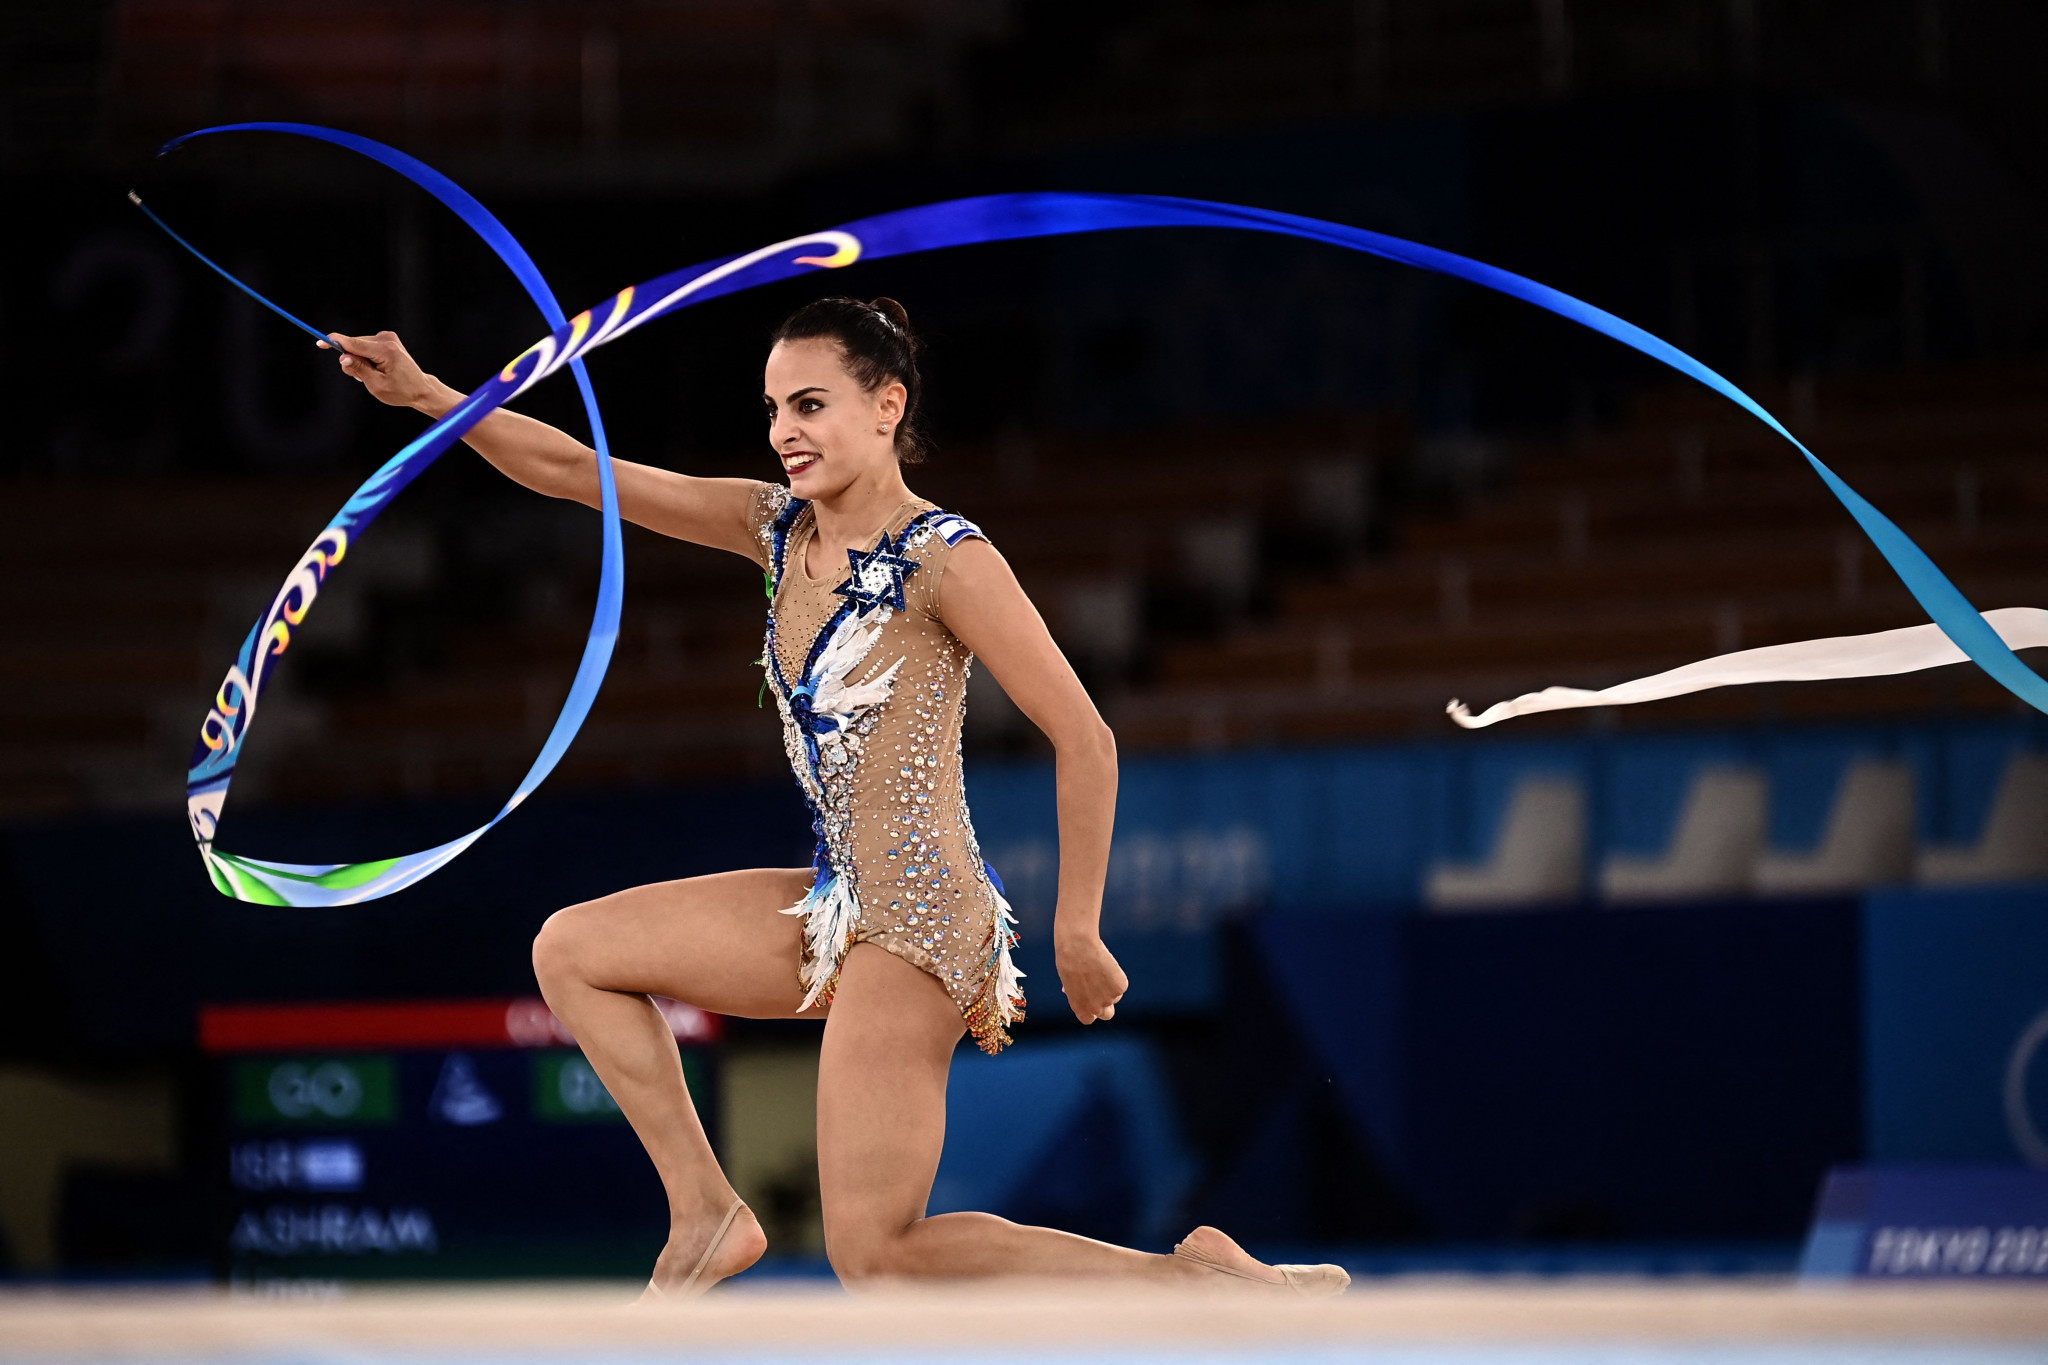 Linoy Ashram's win in the individual all-around has been upheld by FIG ©Getty Images